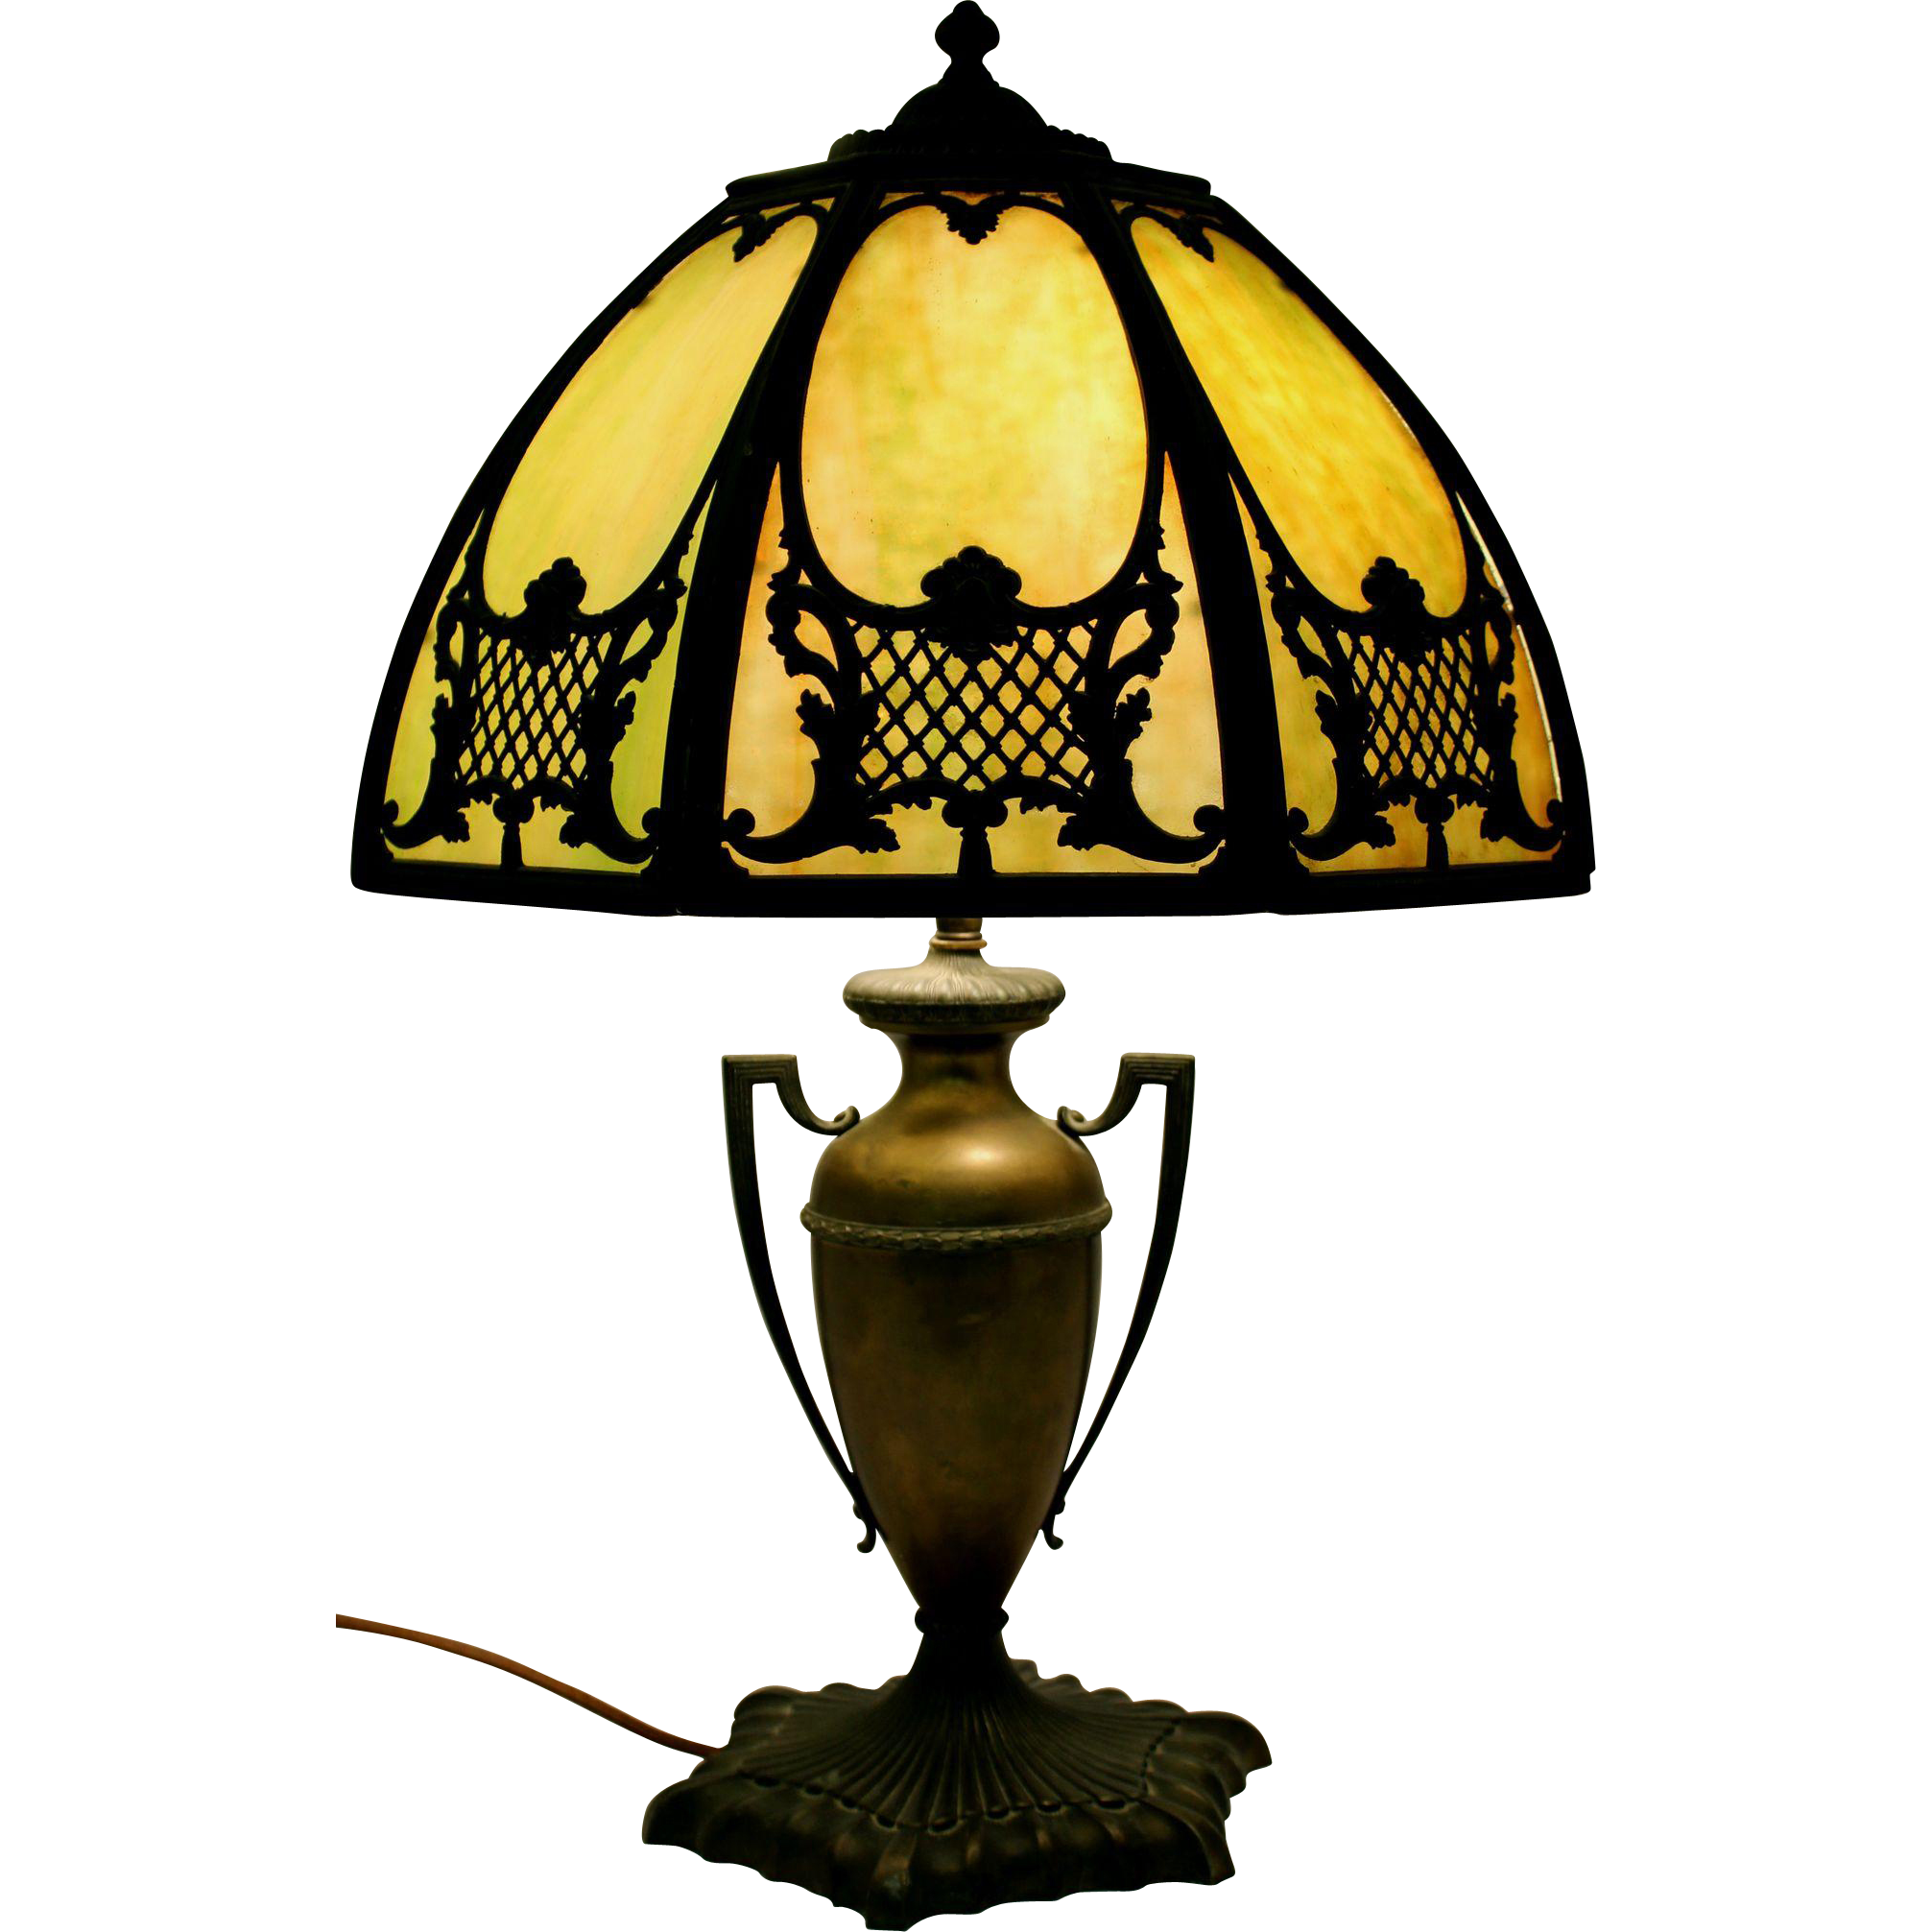 Slag Glass Metal Table Lamp with Urn Form Base circa 1920